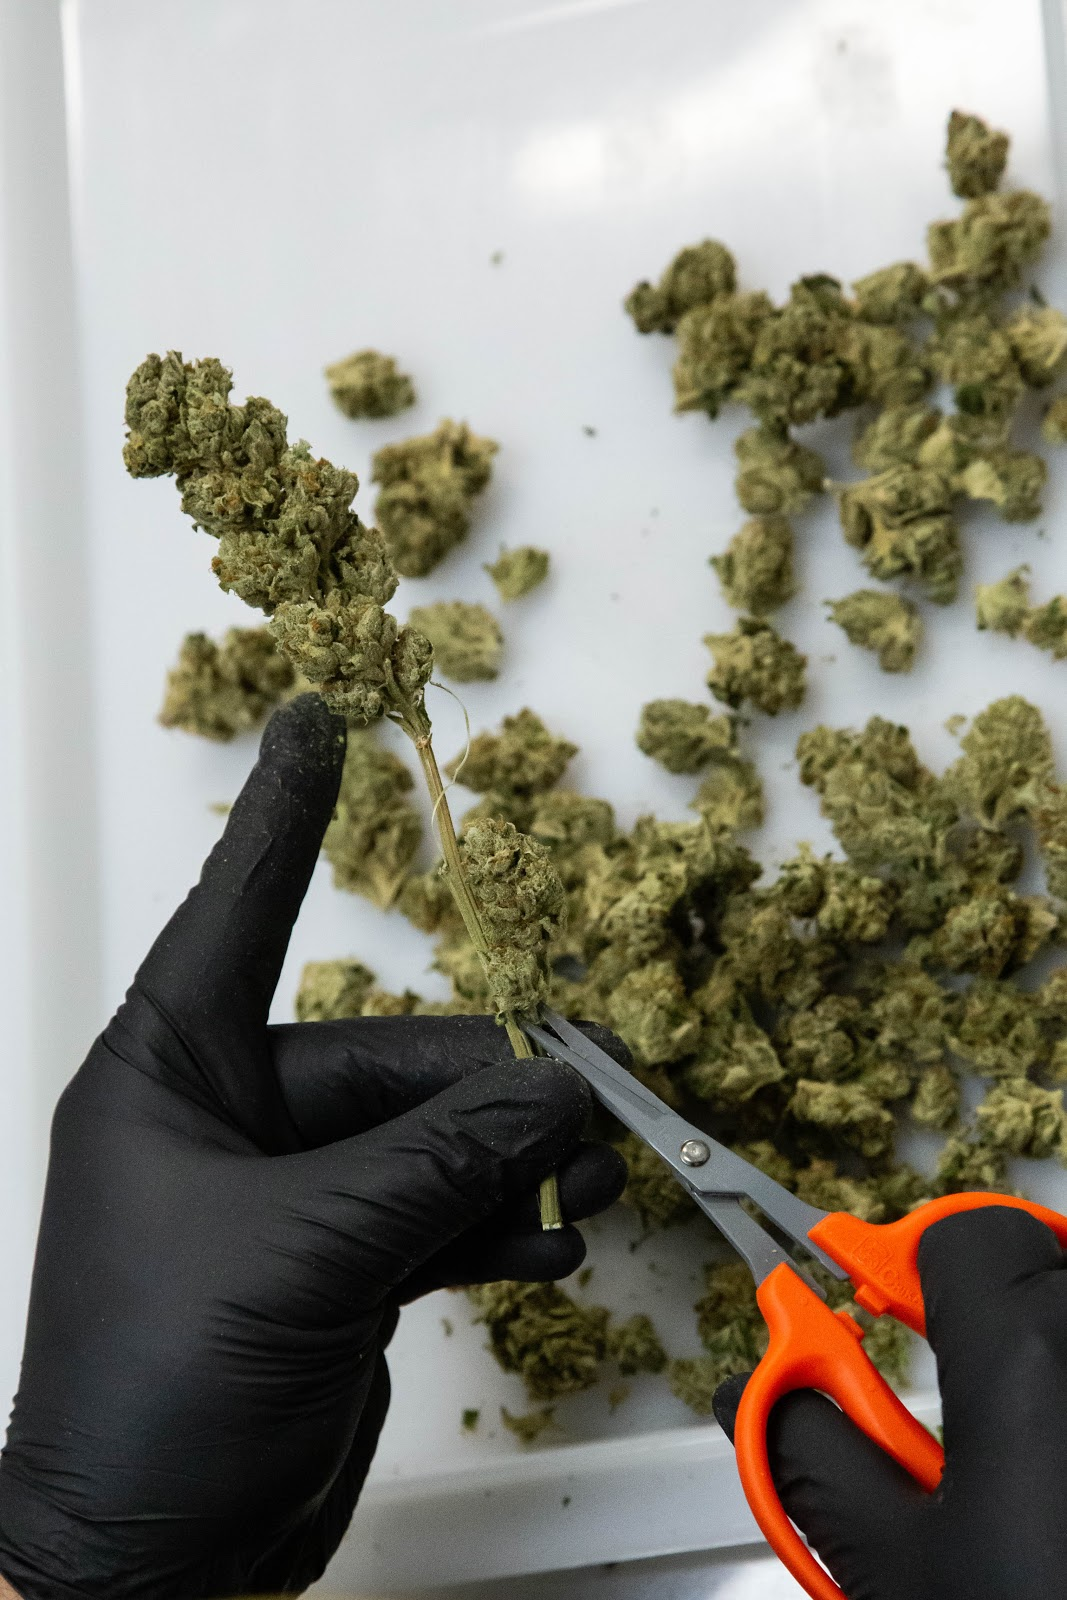 2019_02_06_Trimming_Stems_Cultivation_Flowering_Harmony_Dispensary_Cannabis_Marijuana_08.jpg